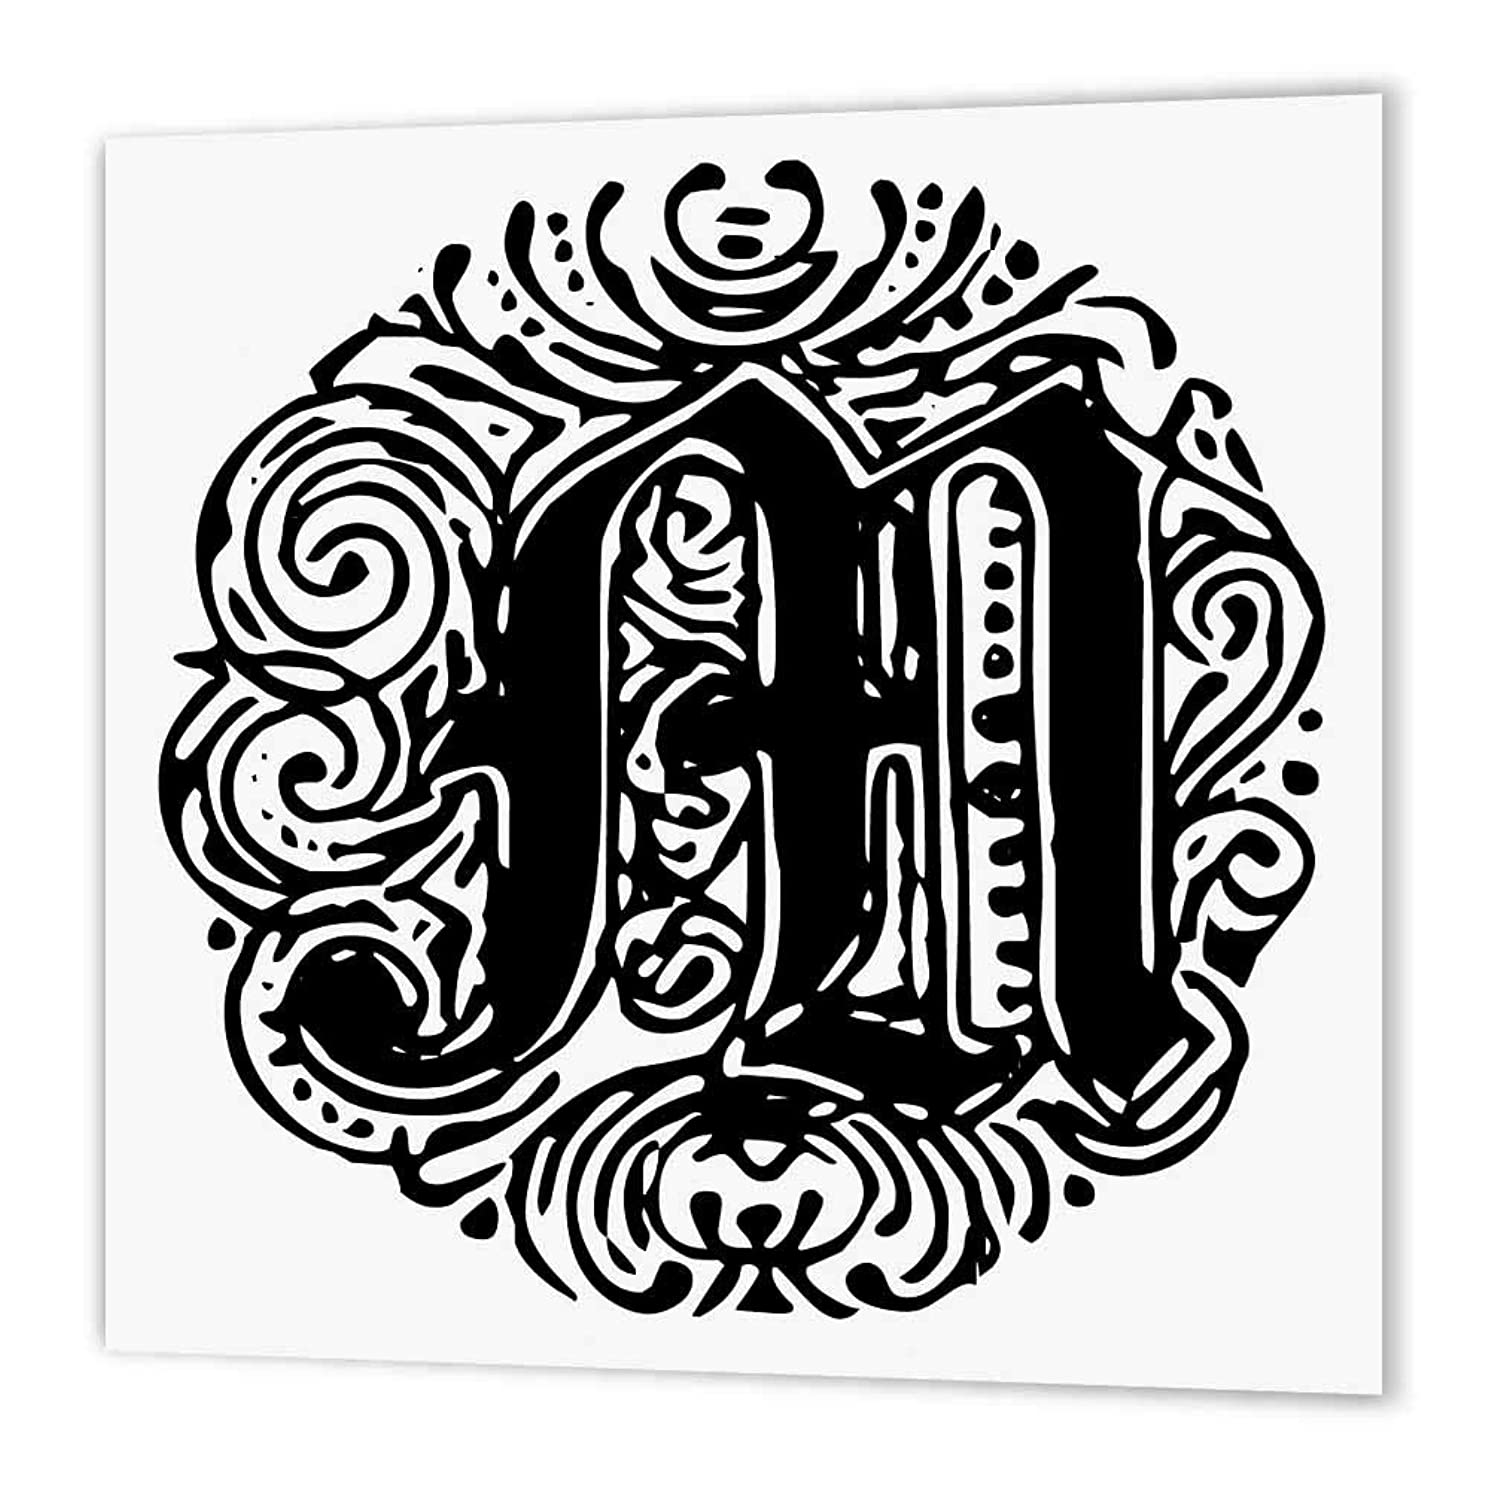 3dRose ht_14221_2 Fancy Letter M Iron on Heat Transfer Paper for White Material, 6 by 6